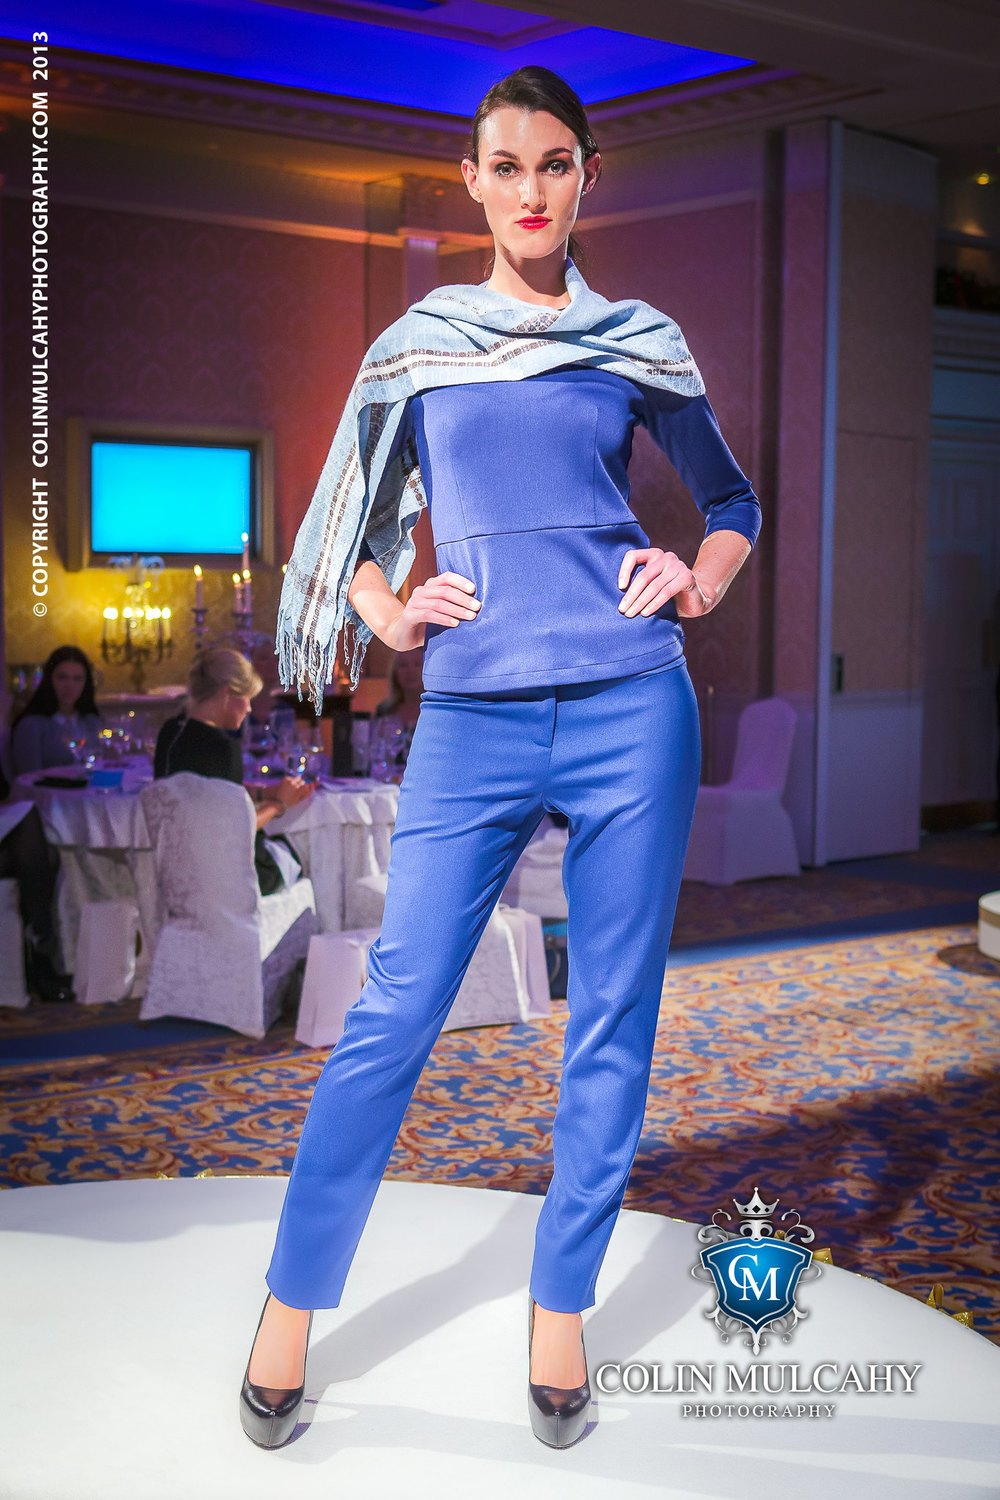 'Dublin Bay' with an outfit by  Lennon Courtney  at  Chic at the Shelbourne  for VSO Ireland, image: Colin Mulcahy